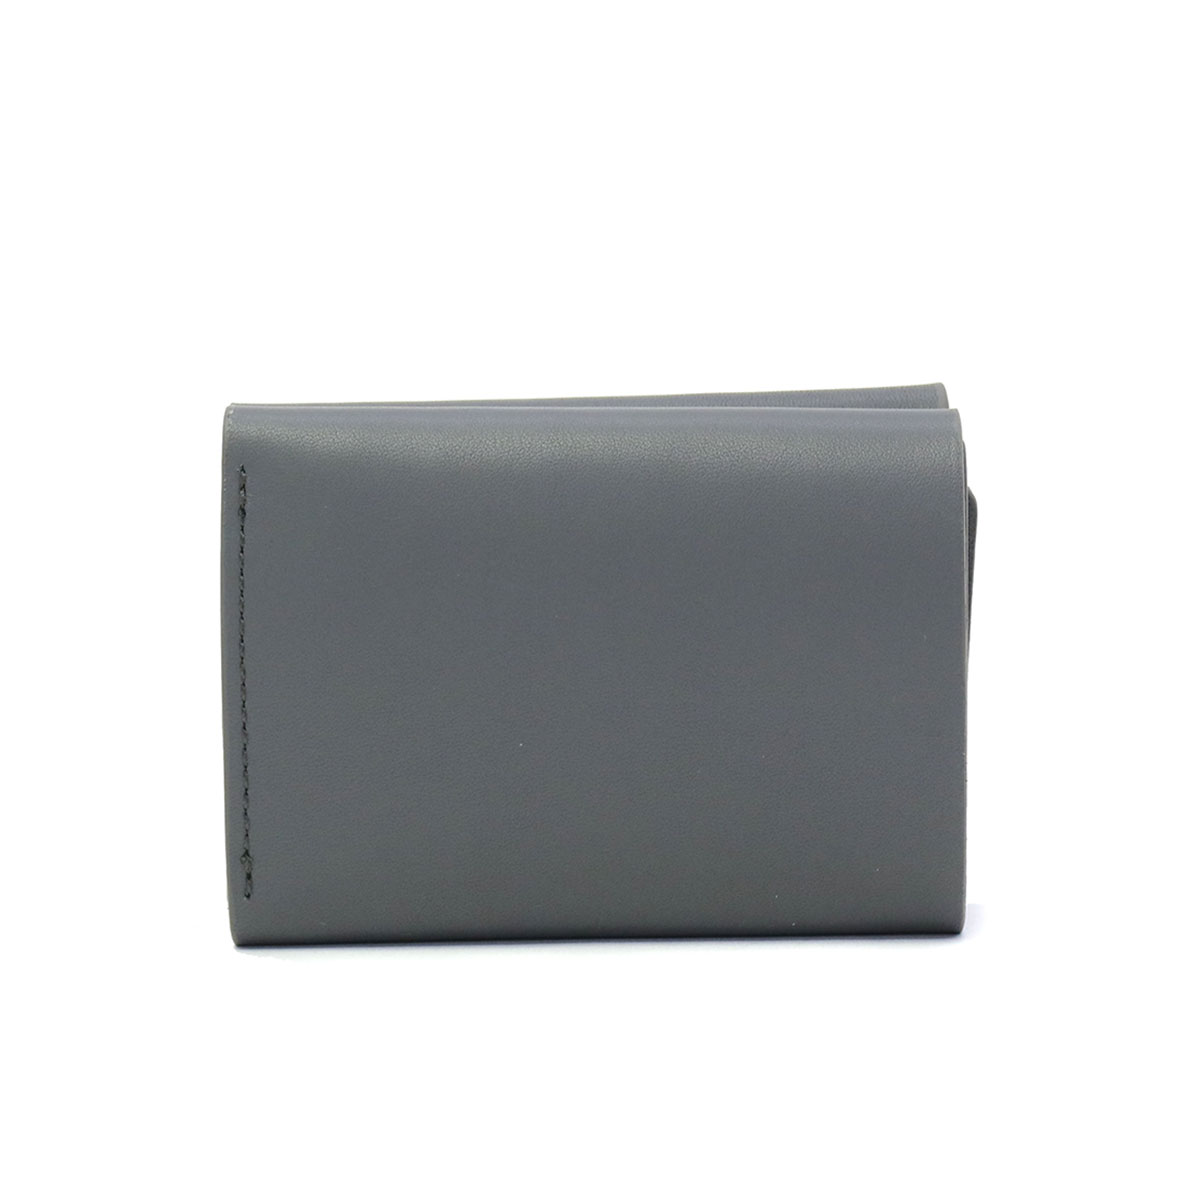 1b6833fd6570 ... STANDARD SUPPLY TRIFOLD WALLET PAL tri-fold wallet women's real leather  men's compact short wallet ...